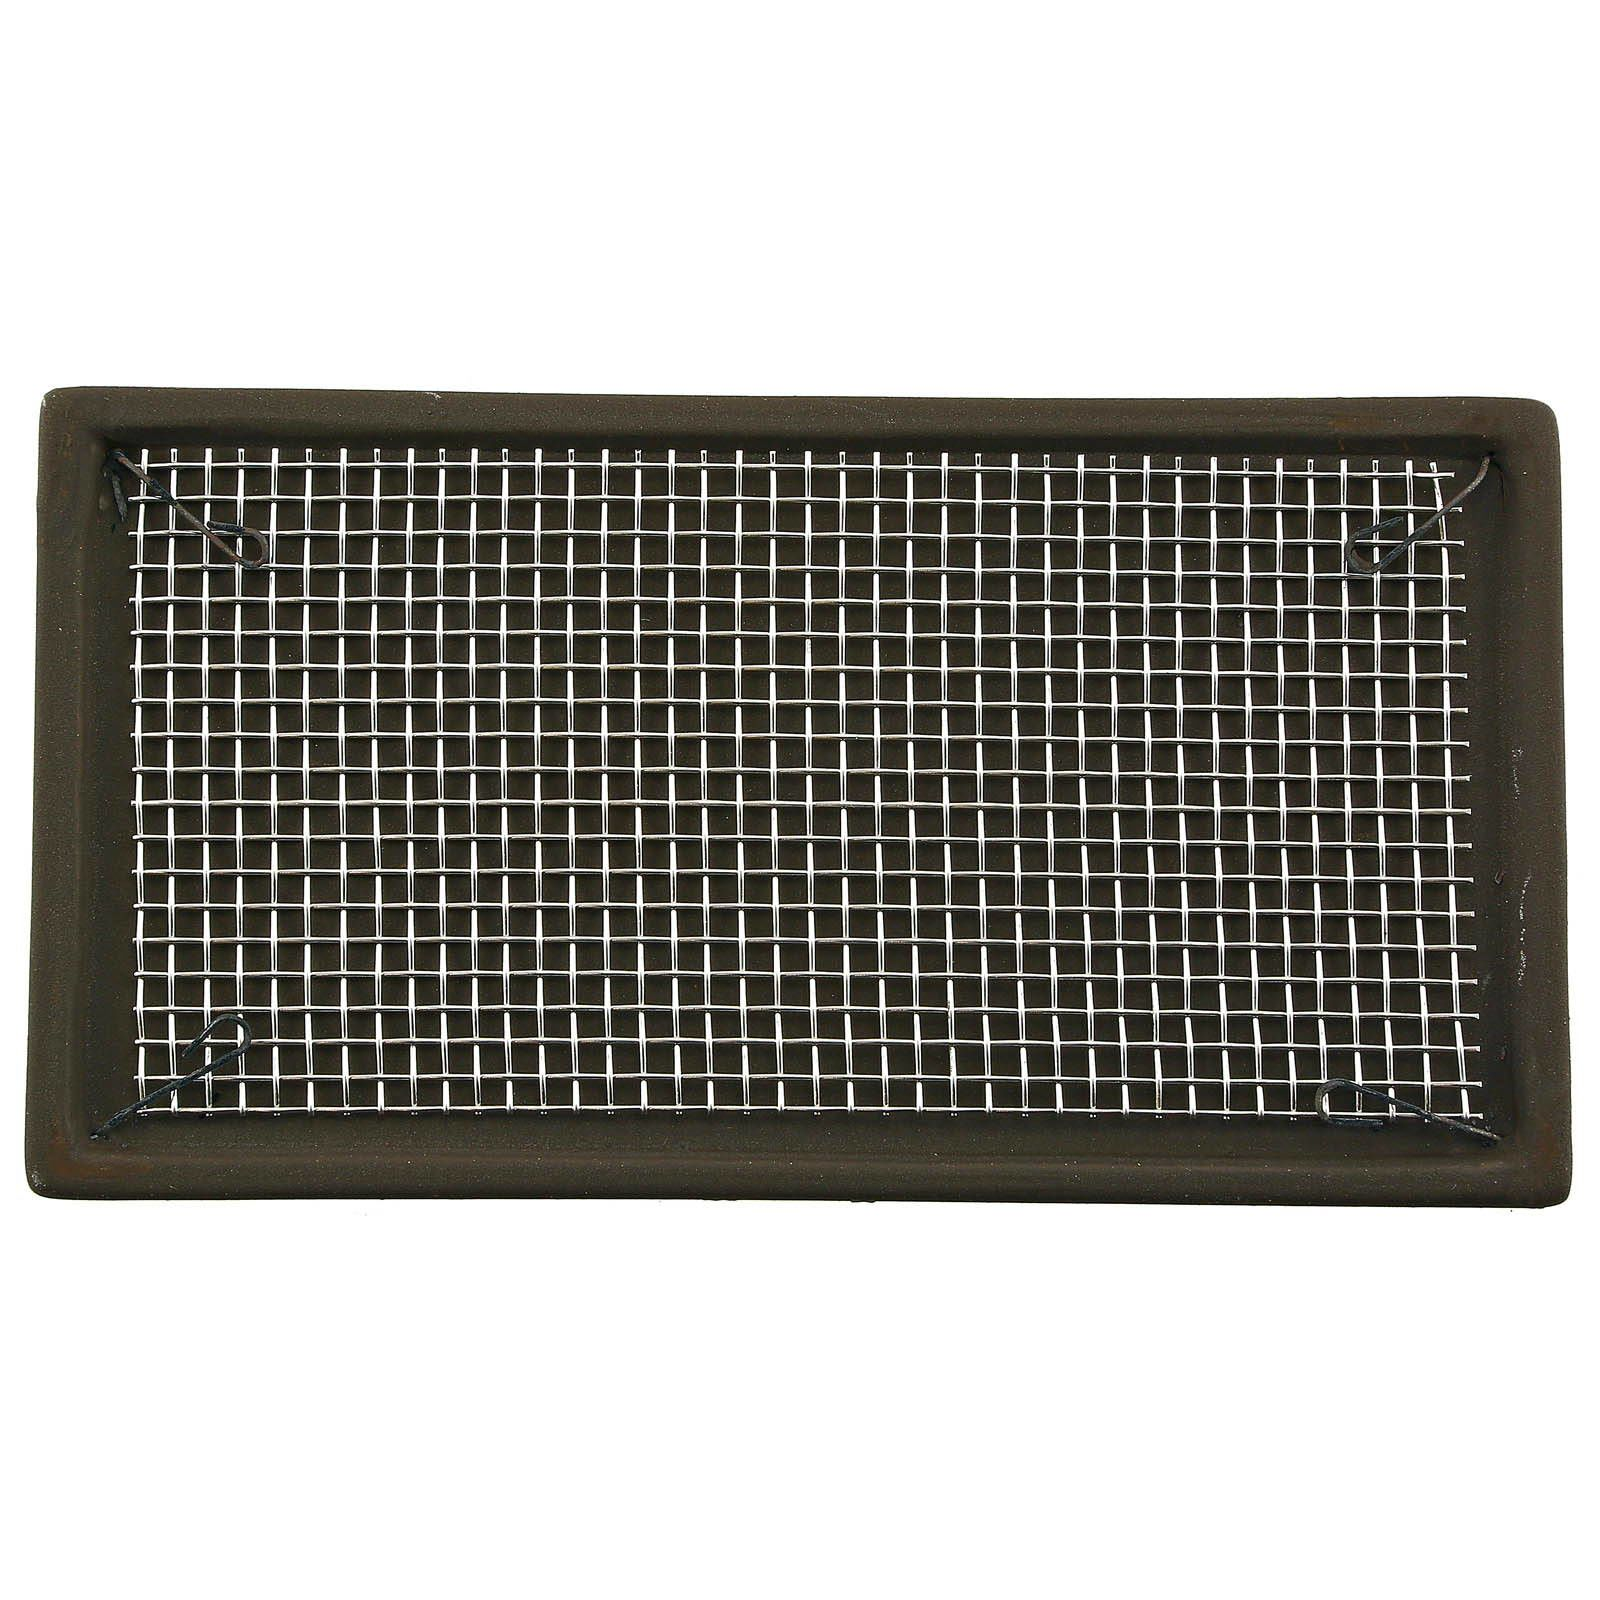 Aquasabi - Ceramic Moss Pad - with stainless steel grid